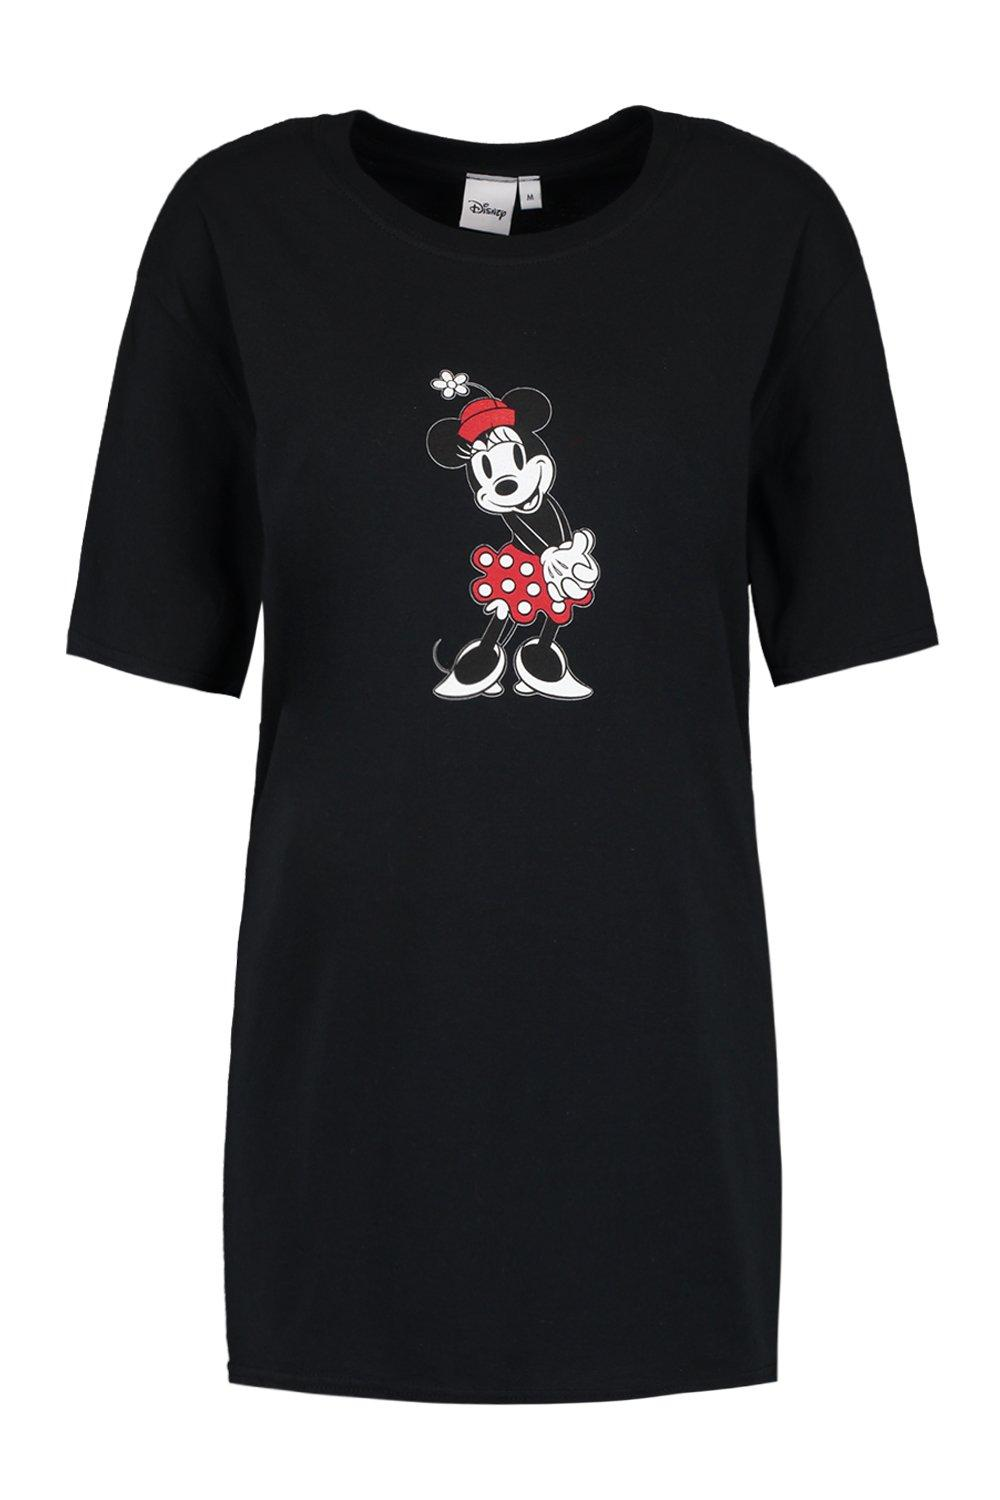 Oversized Graphic Minnie T Shirt black Disney BgFwqanWx